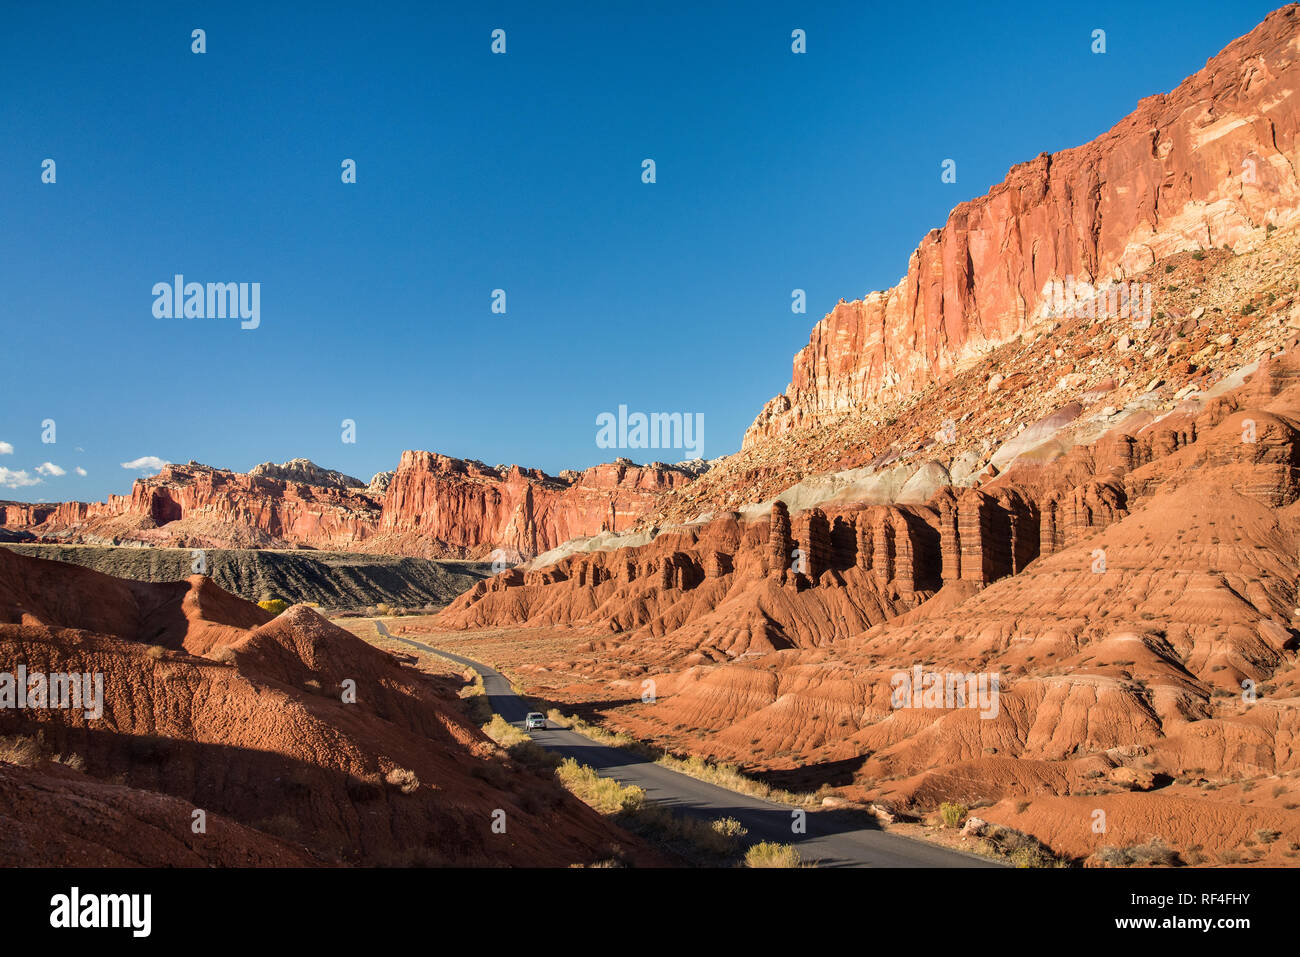 Scenic Drive and the layered sandstone escarpment of Waterpocket Fold, Capitol Reef National Park, Utah. Stock Photo